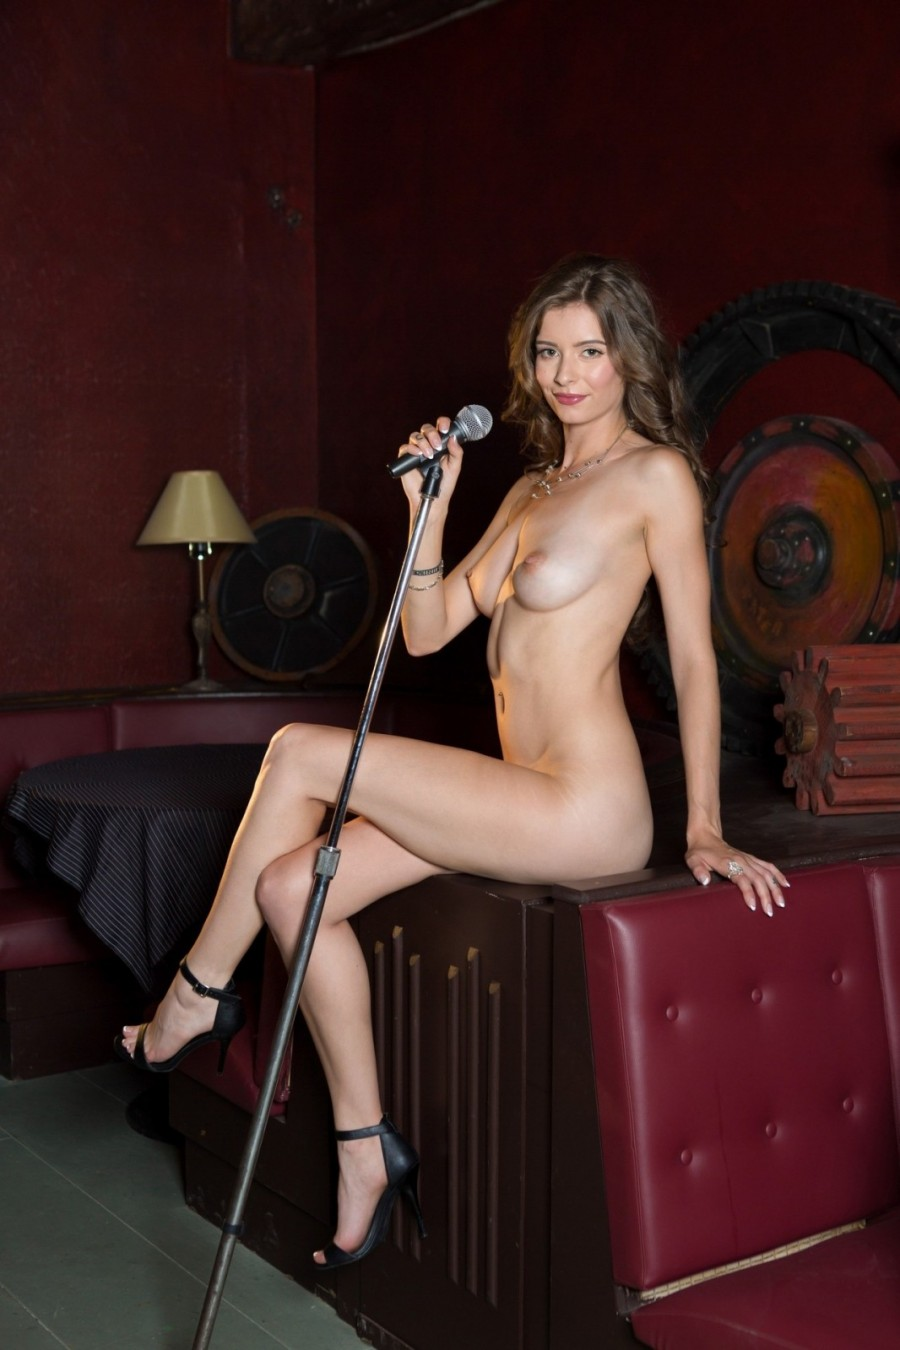 Naked hottie gives a solo performance